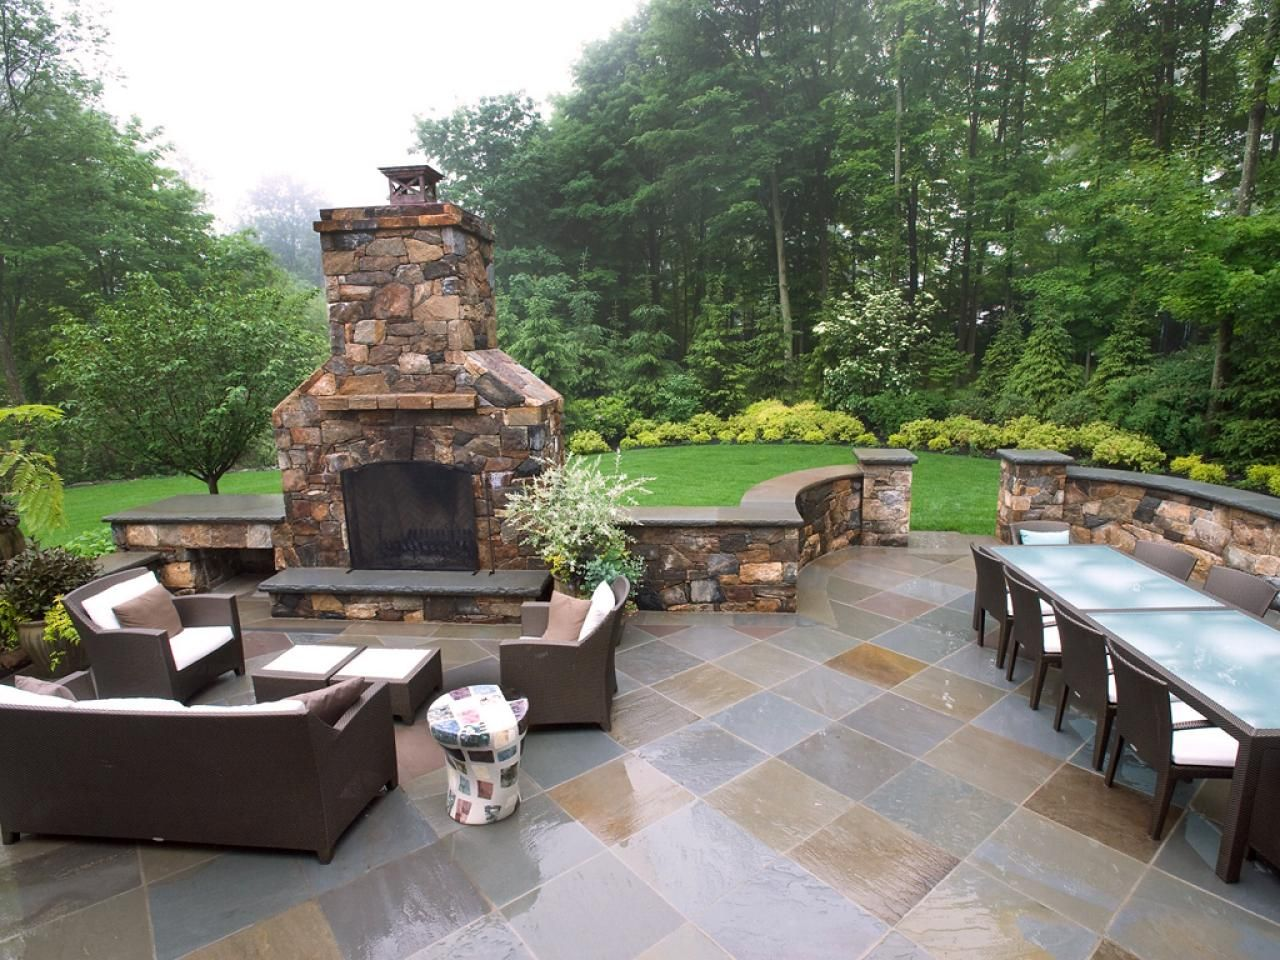 Outdoor Fireplace Design Ideas Outdoor Stone Fireplaces Patio Design Outdoor Fireplace Designs